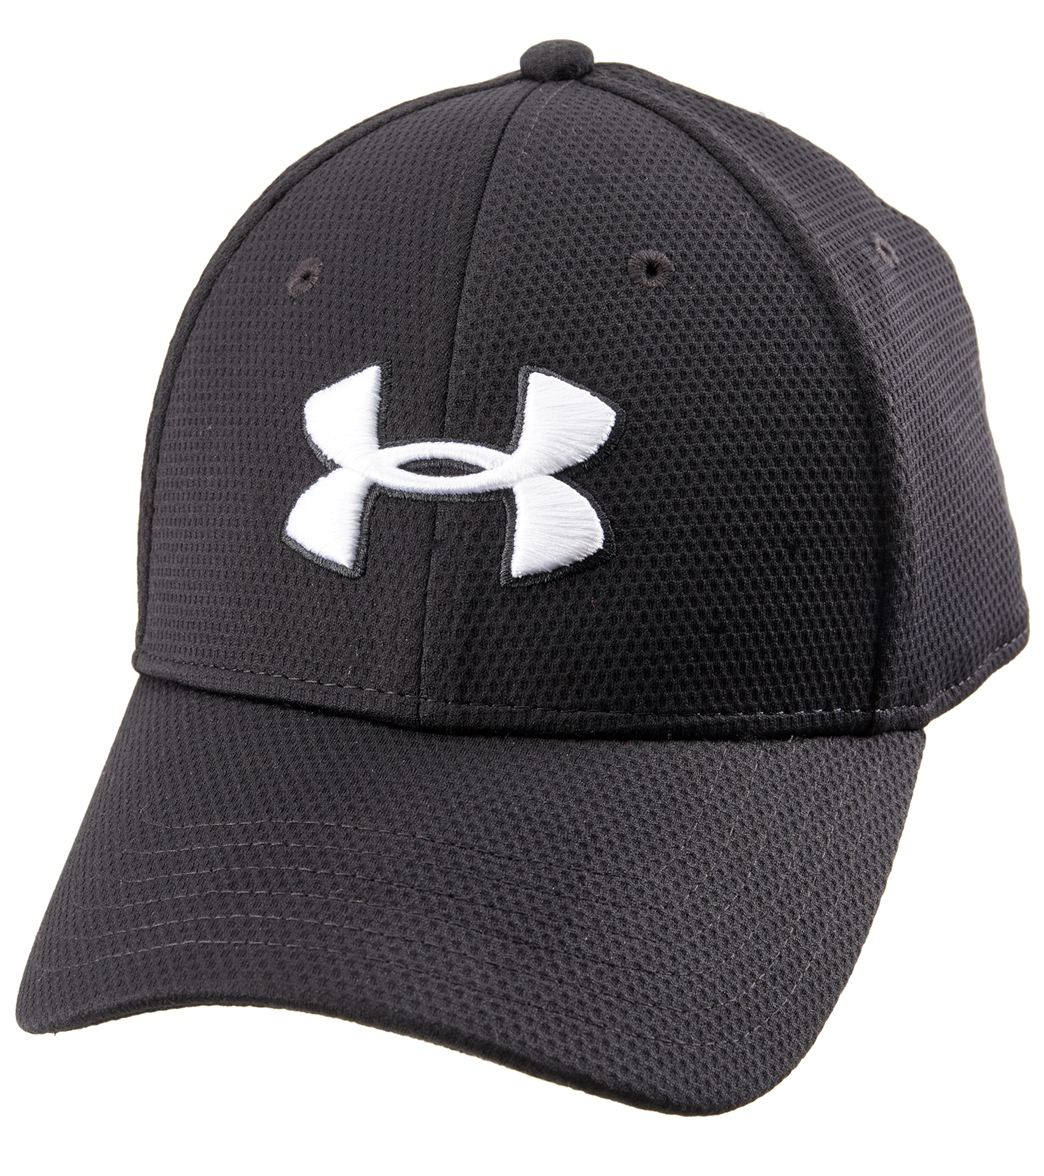 01f201fbd40 Under Armour Men s Blitzing II Stretch Fit Hat at SwimOutlet.com